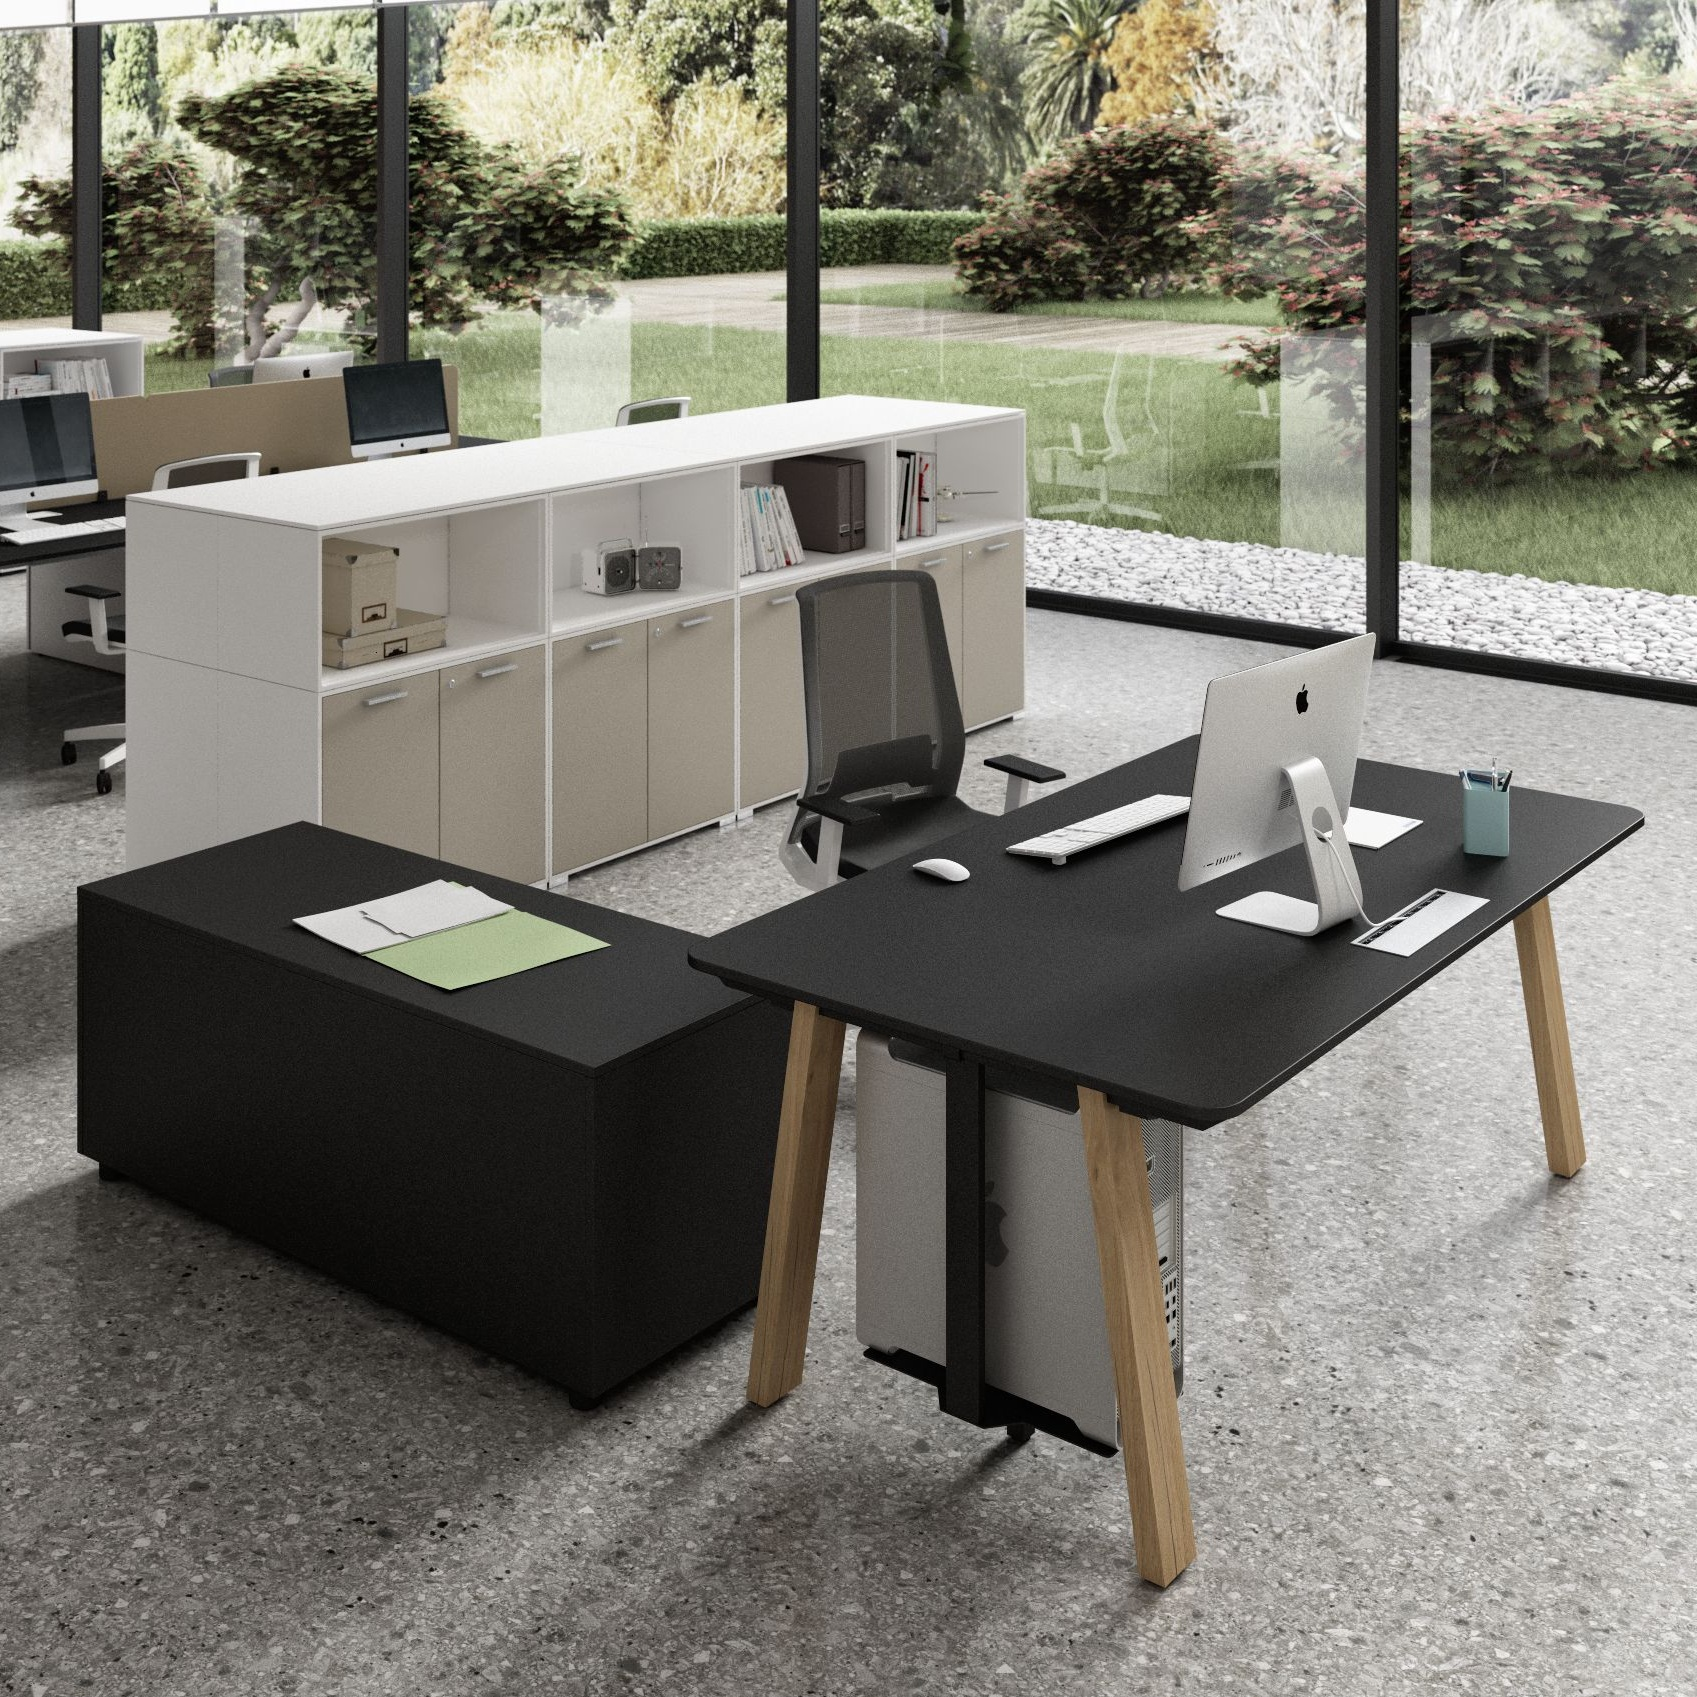 A little bit country, a little bit rock & roll. - Intelligent, fresh, wholesome workstations that make your spaces sing. Large tops for team tasks, protection and privacy for individual tasks, earthy textured finishes and easy to handle communication systems that create harmony and motivation.  Starting at: $ 1,247